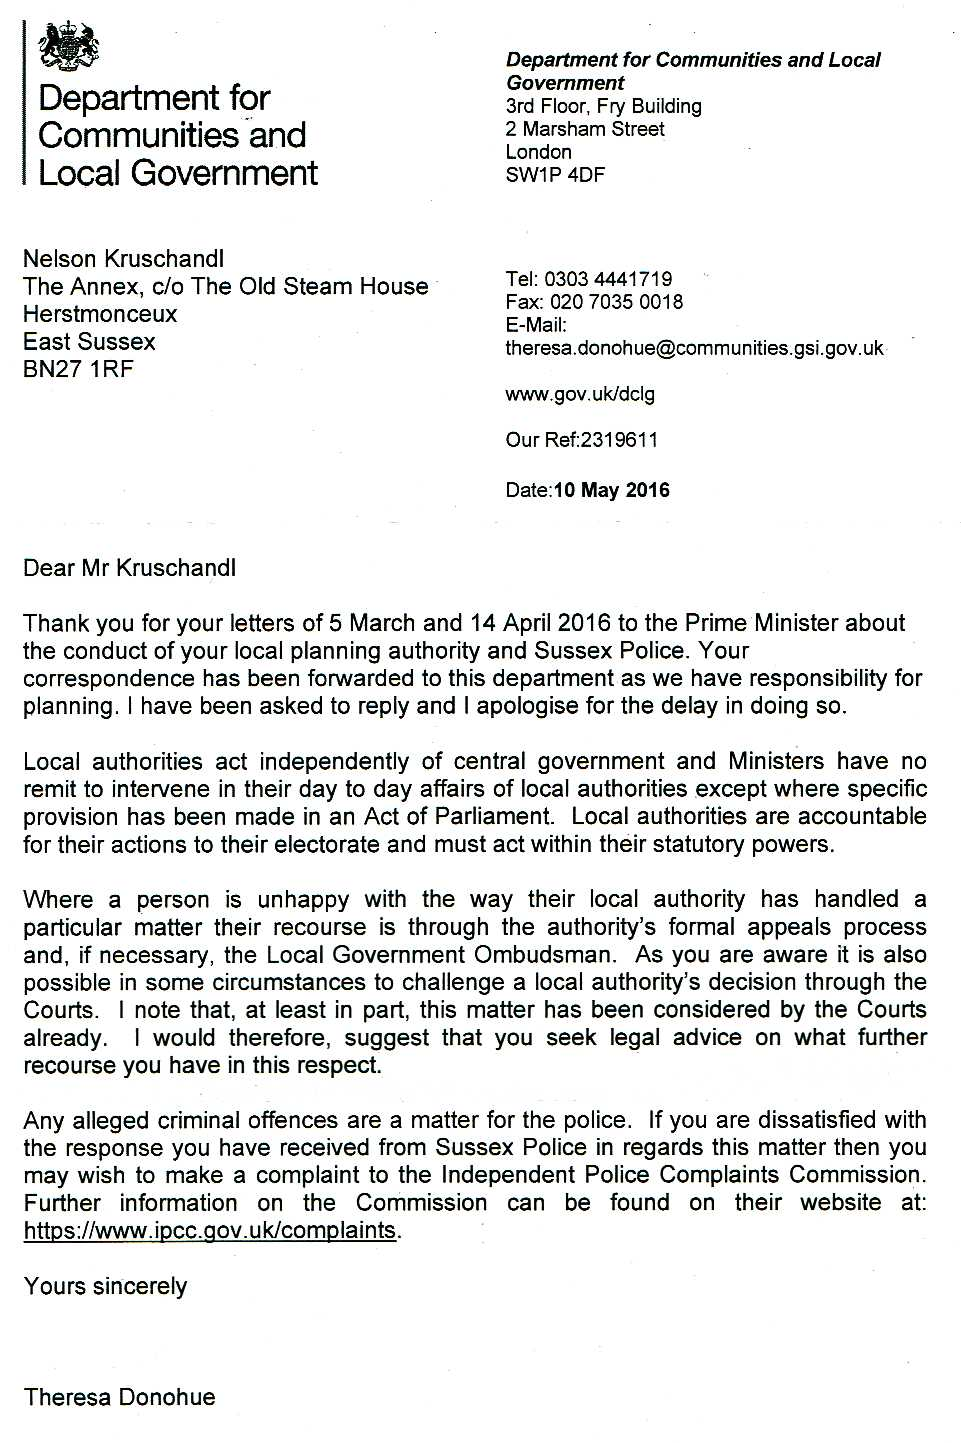 Letter from Department for Communities and Local Government 10 May 2016